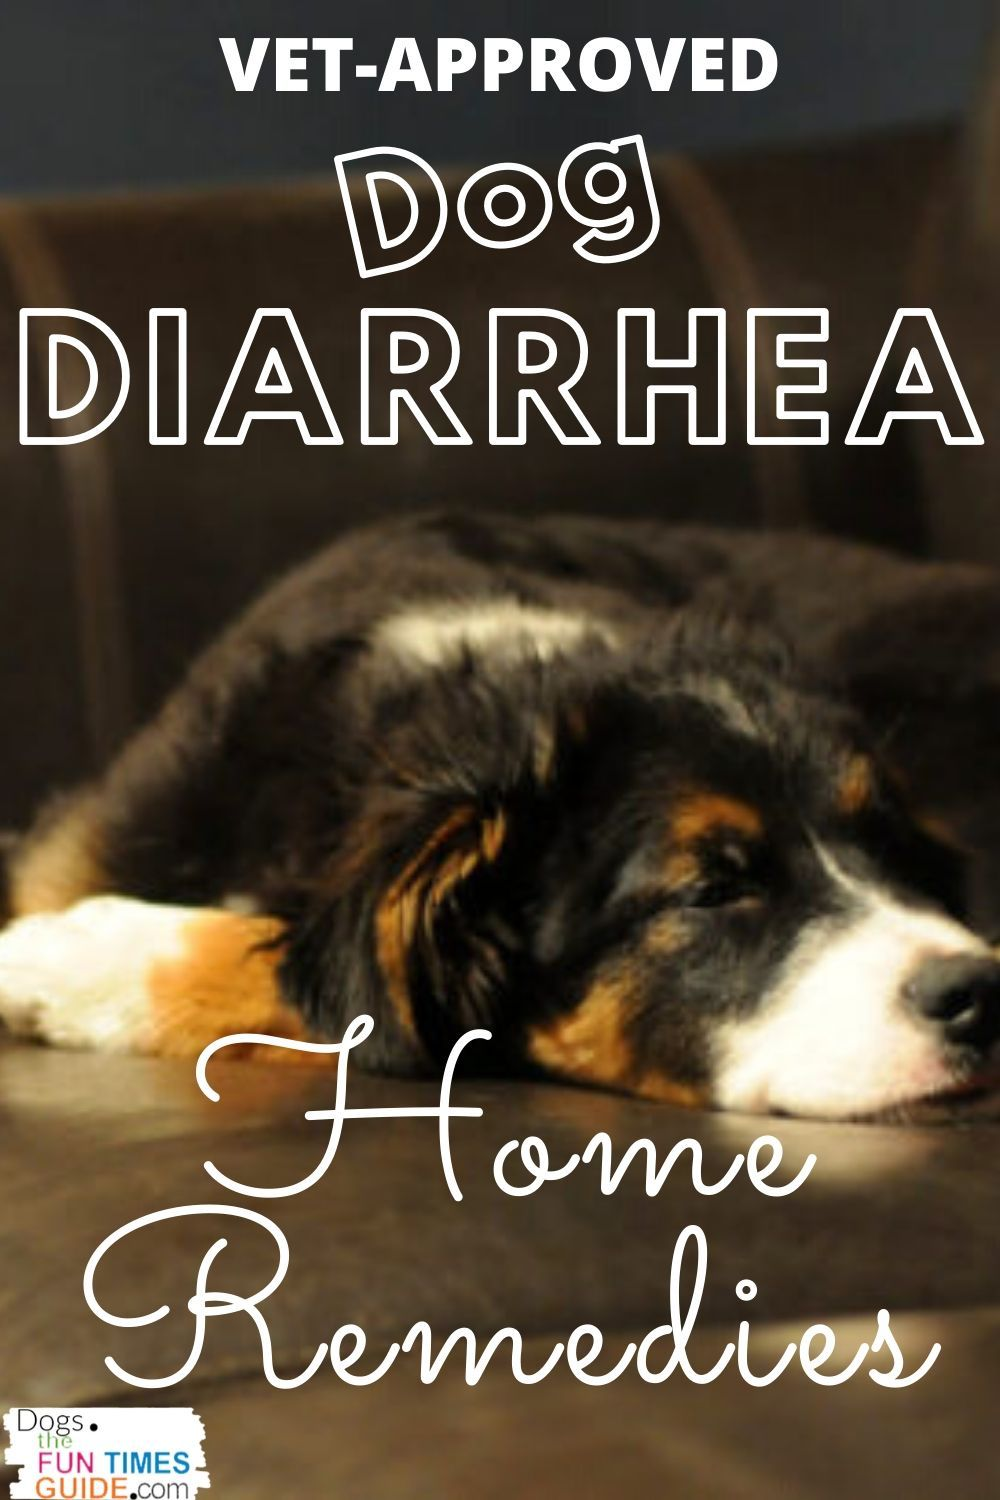 Dog Diarrhea Home Remedies That I Learned While Working